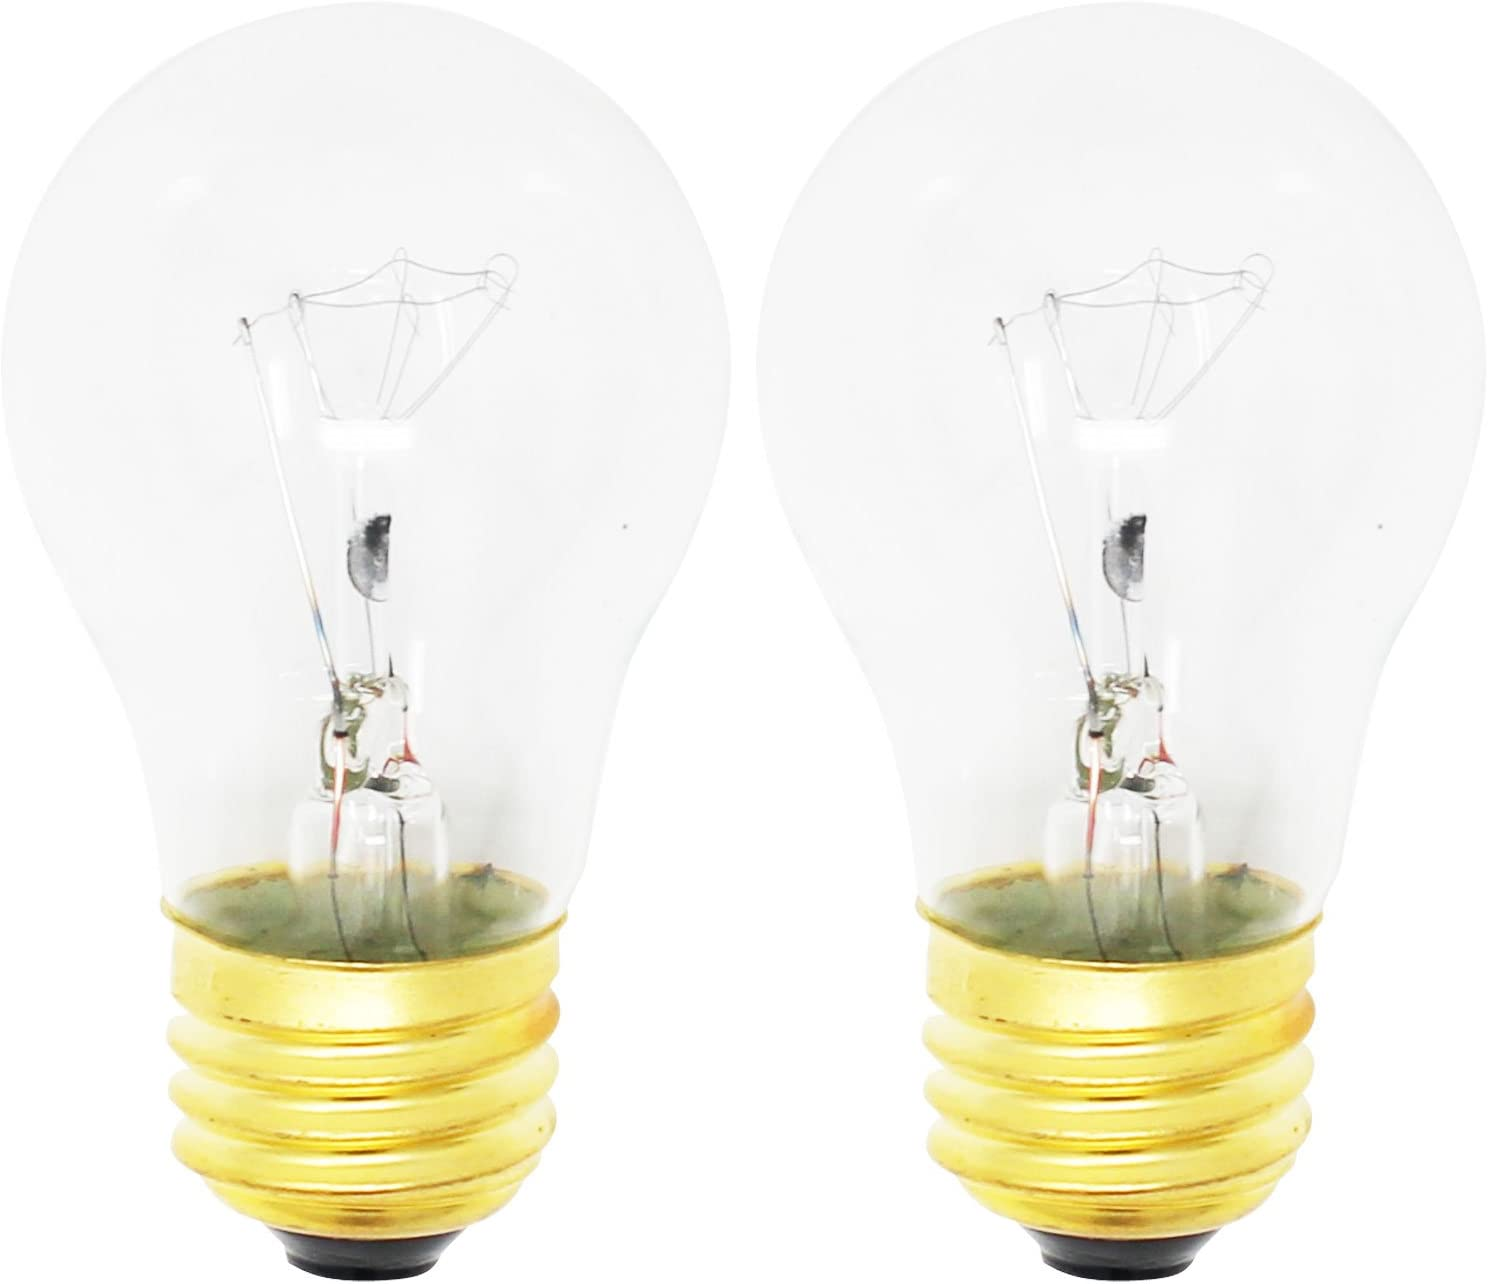 Amazon Com 2 Pack Replacement Light Bulb For Kenmore Sears 79046783902 Range Oven Compatible With Kenmore Sears 316538901 Light Bulb Home Improvement